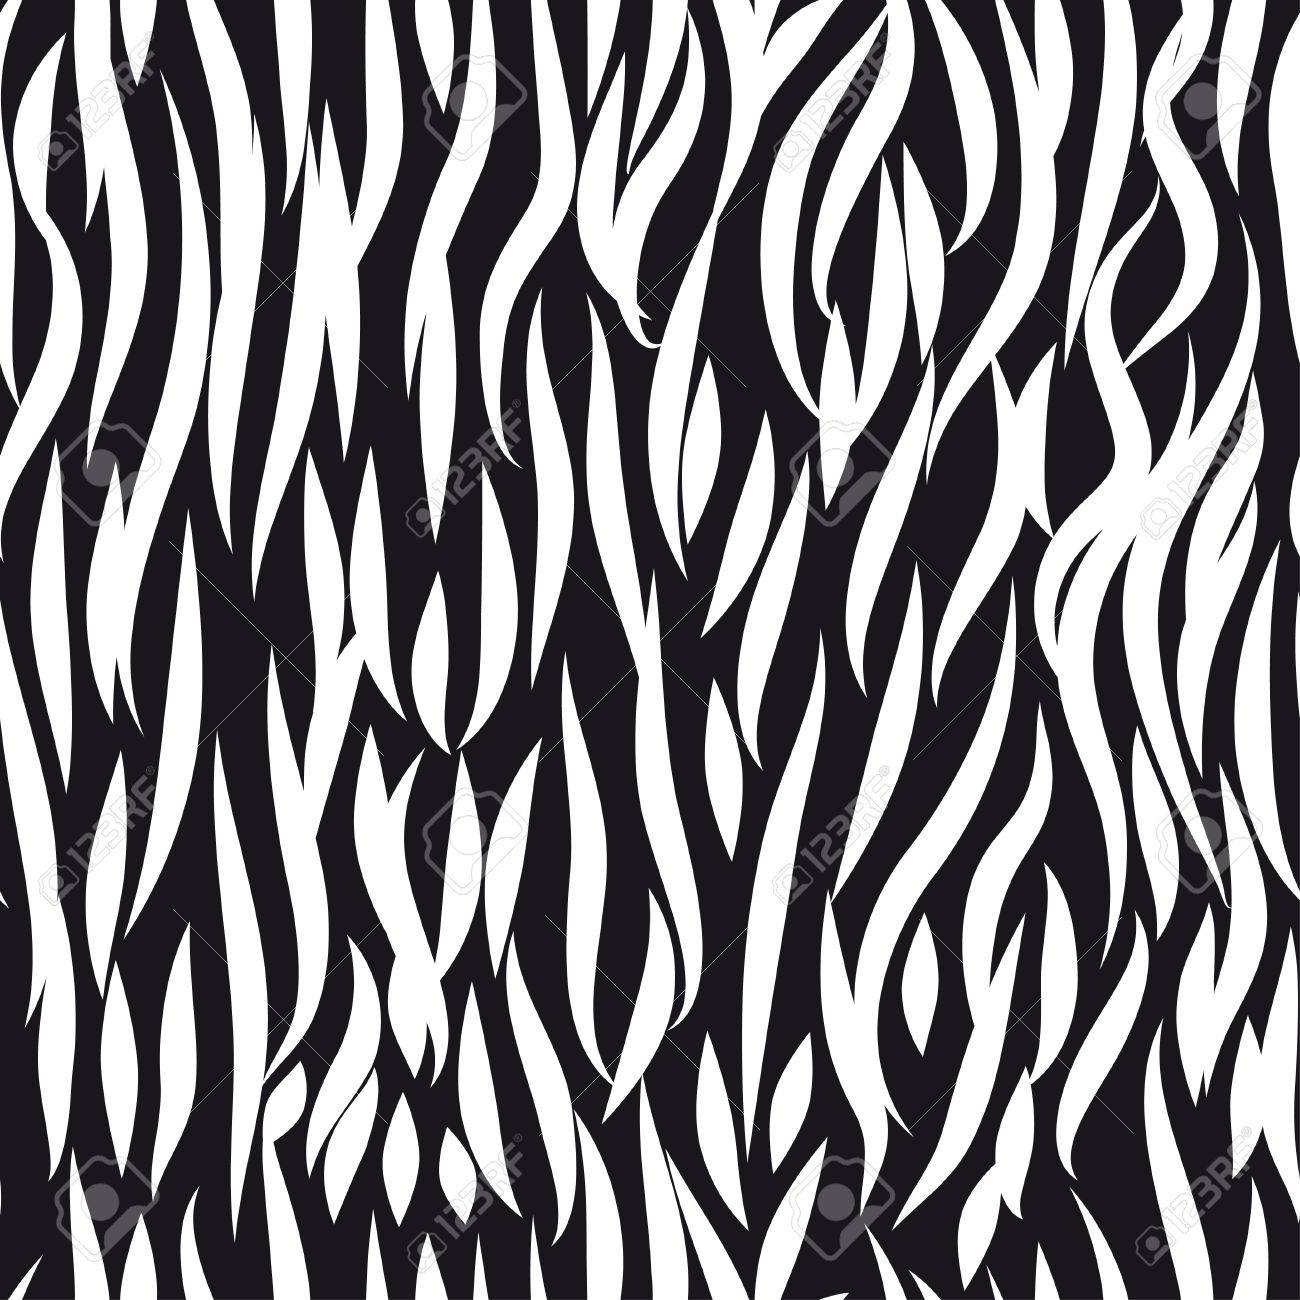 Delighted 10 Commandment Coloring Pages Thick 100 Bill Template Regular 100 Dollar Bill Template 11 Vuze Search Templates Old 15 Year Old Resume Example Black17 Year Old Resume Sample Simple Seamless Pattern With Zebra Effect. Not Clipping Mask ..